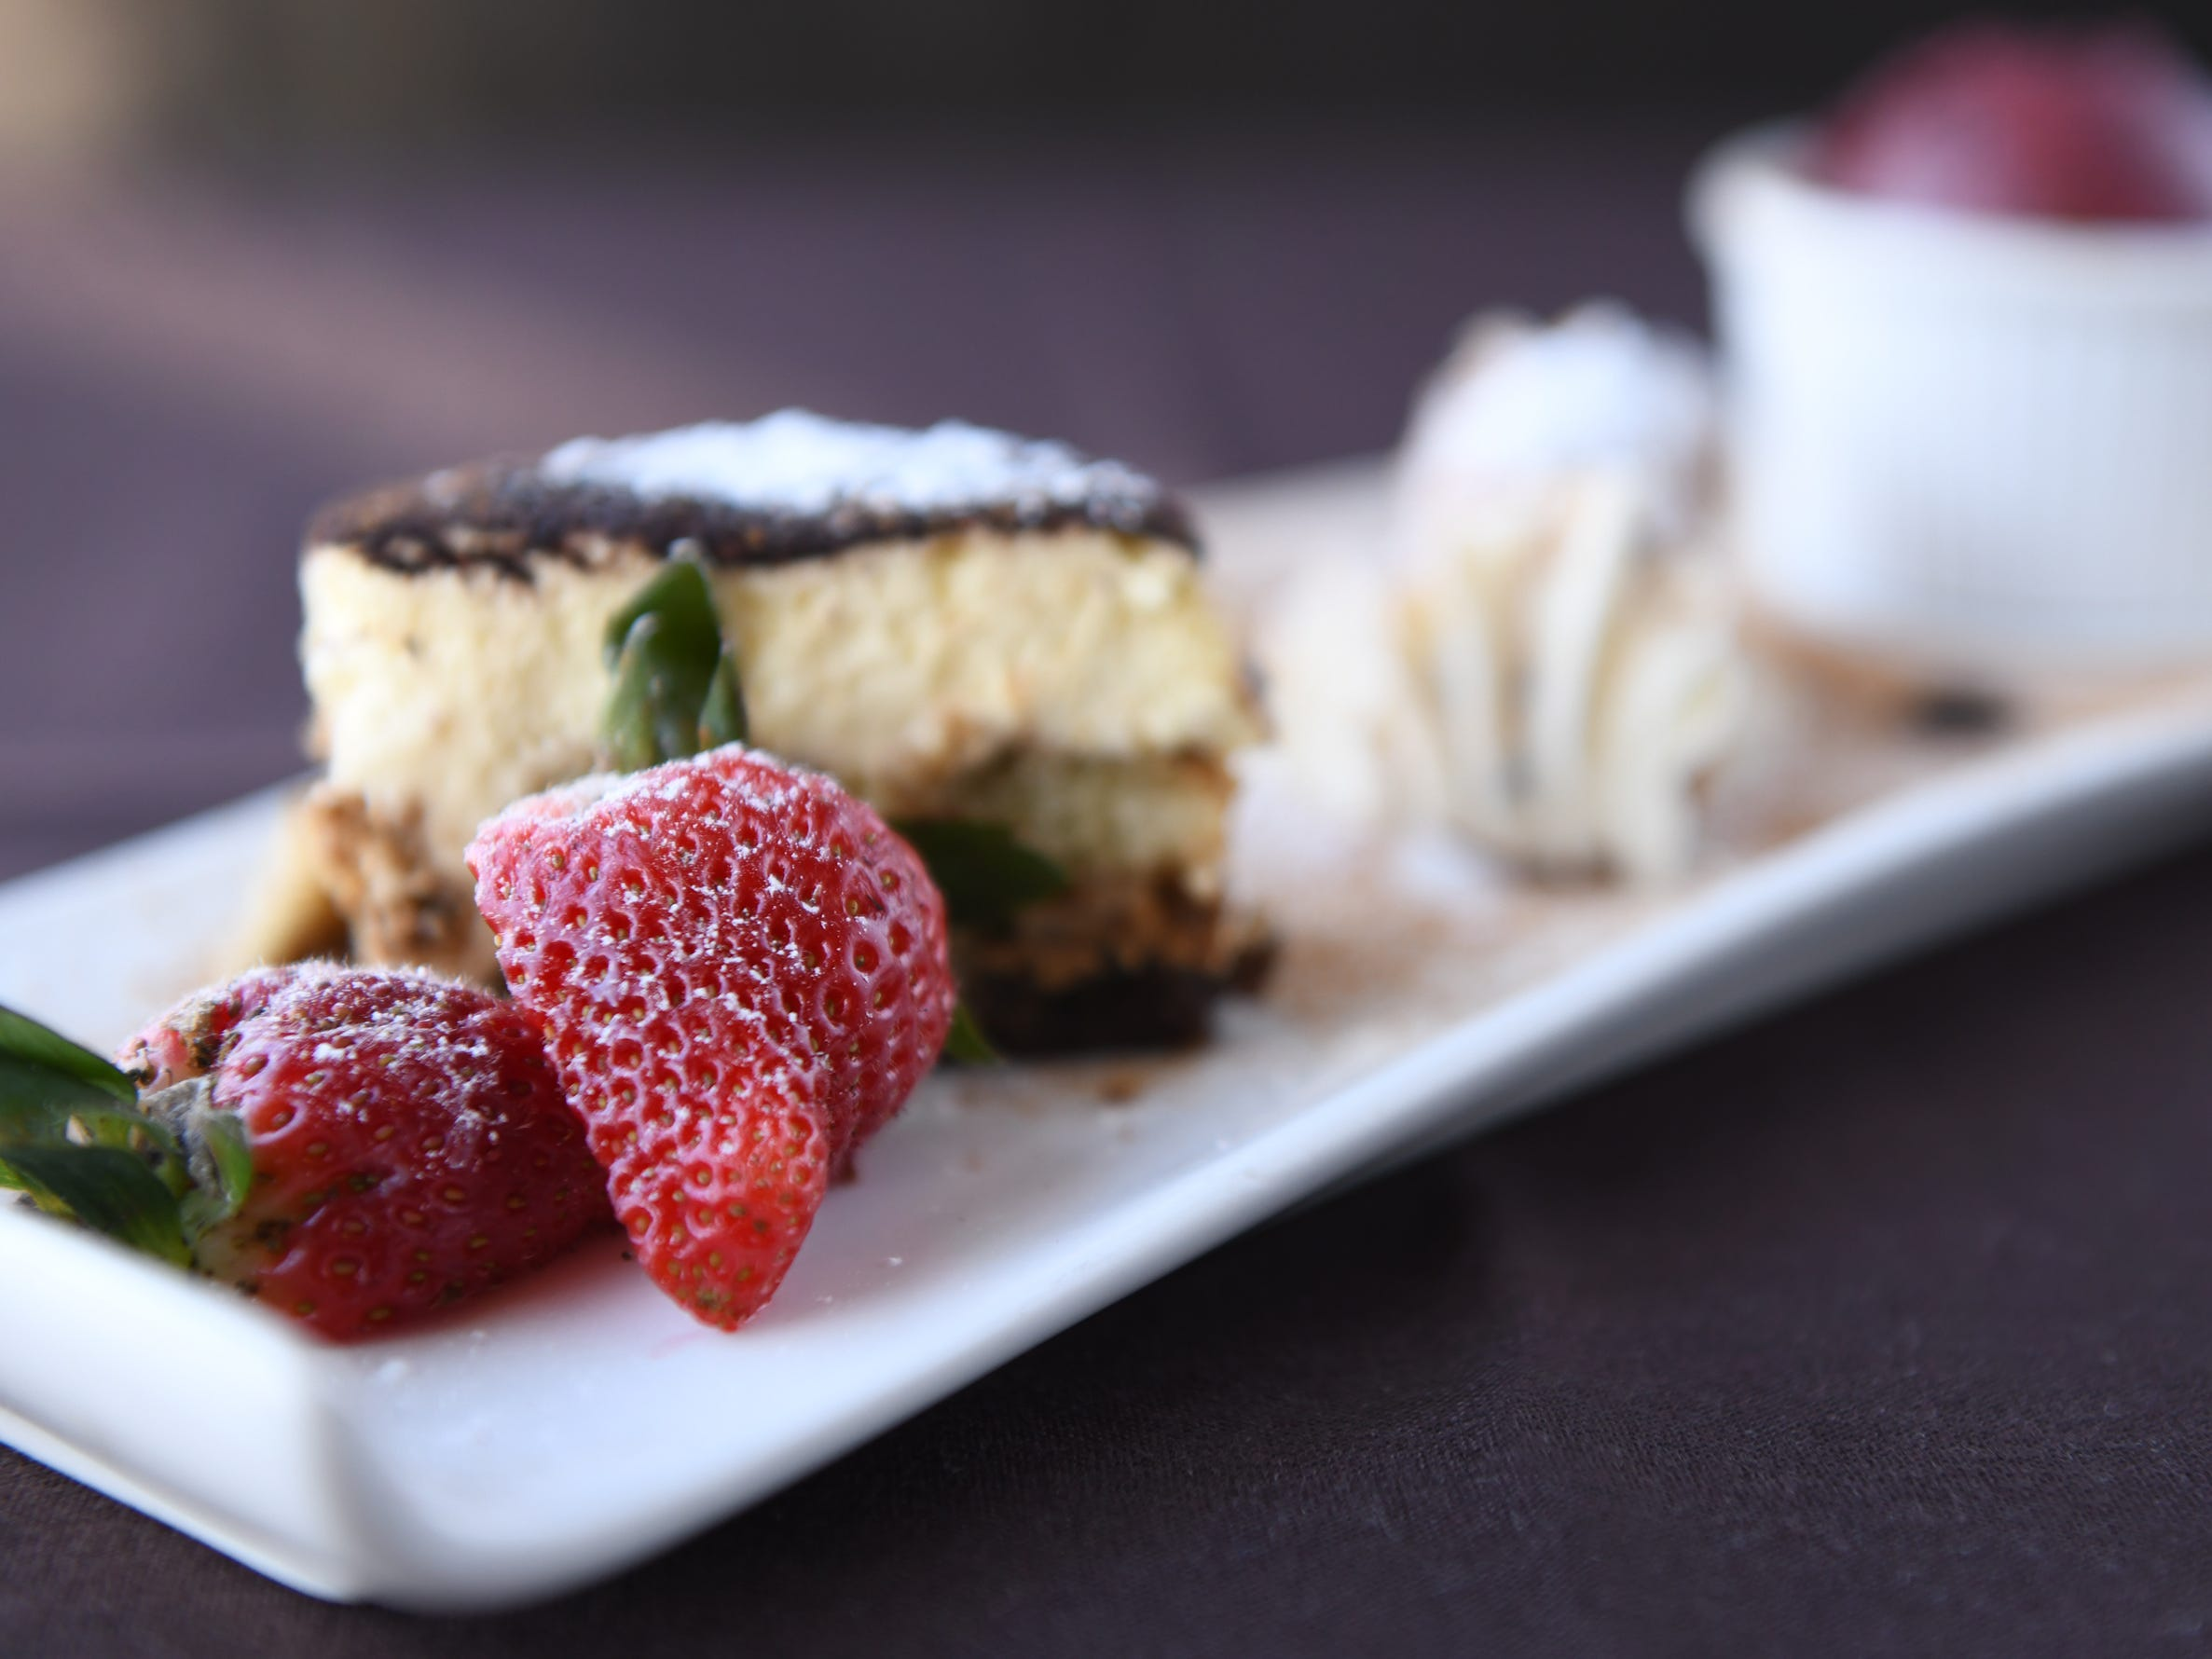 A chef's sampler plate with tiramisu, cannoli, and raspberry sorbet is the dessert on the SJ Hot Chefs' Spring Restaurant Week menu of Anthony's Creative Italian Cuisine in Haddon Heights.